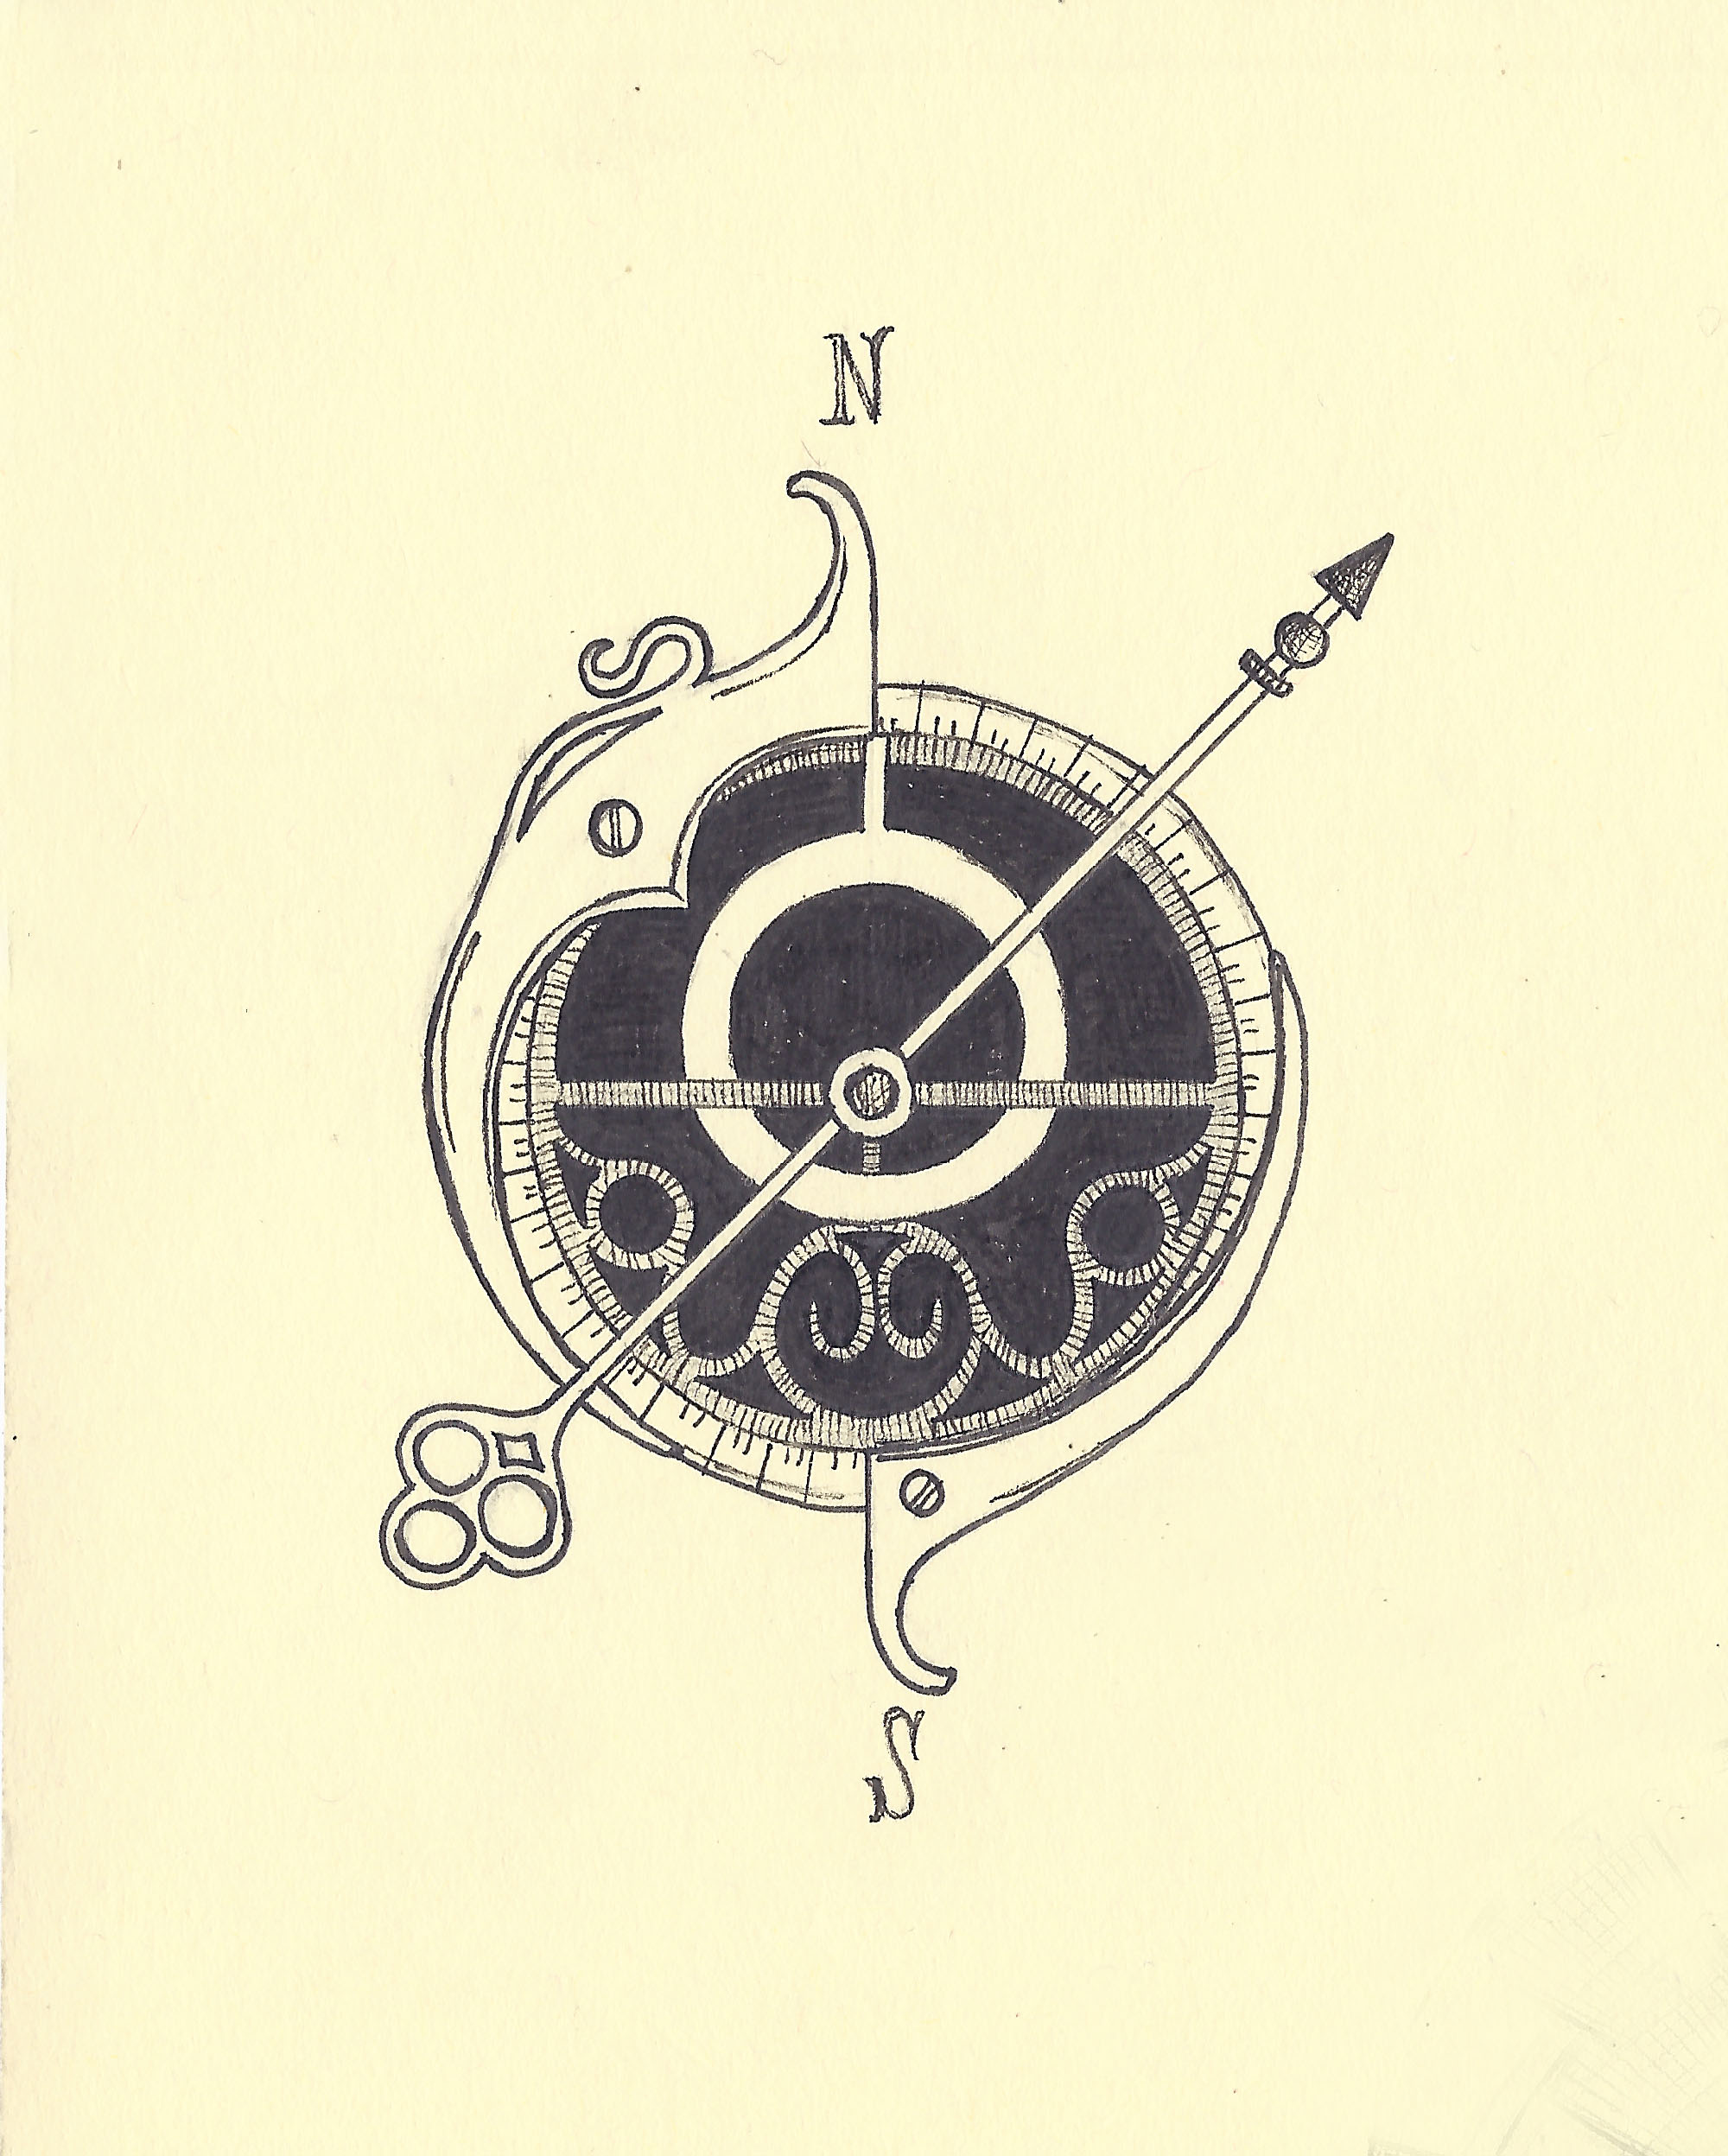 2000x2495 Astrolabesteampunk Compass Illustrated Maps